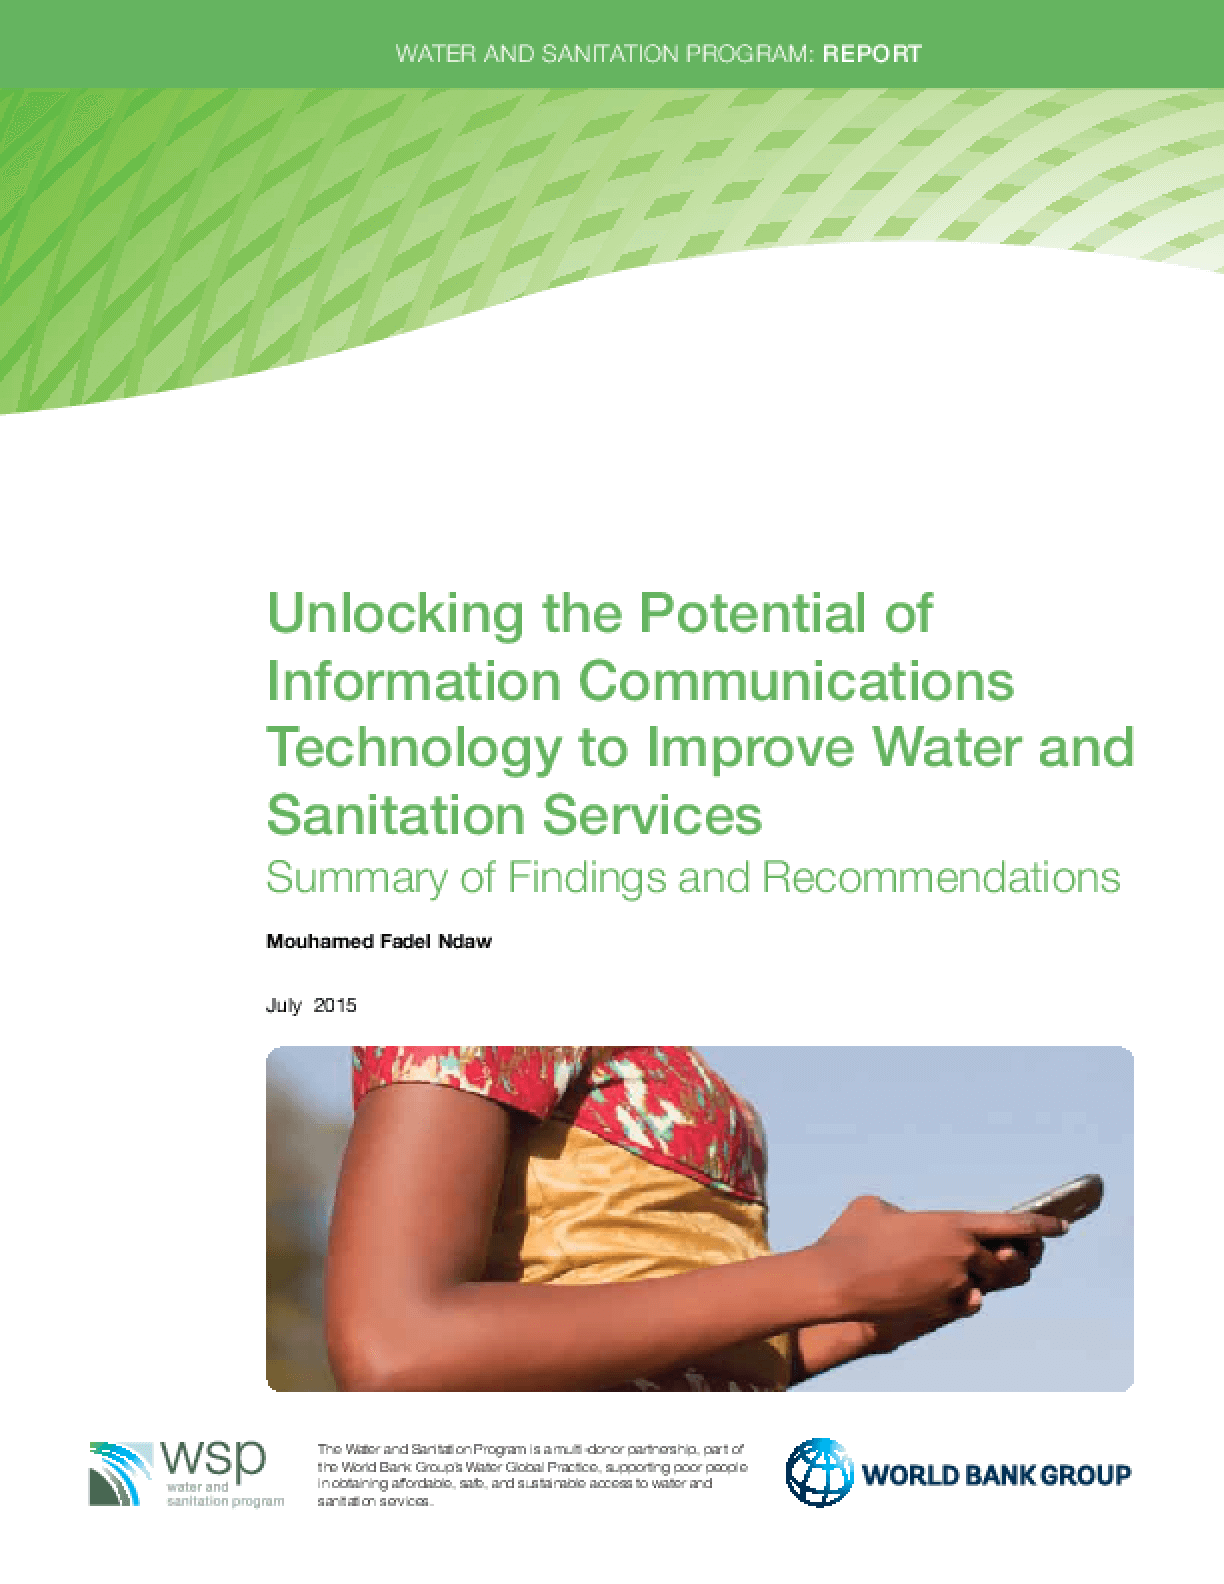 Unlocking the Potential of Information Communications Technology to Improve Water and Sanitation Services: Summary of Findings and Recommendations